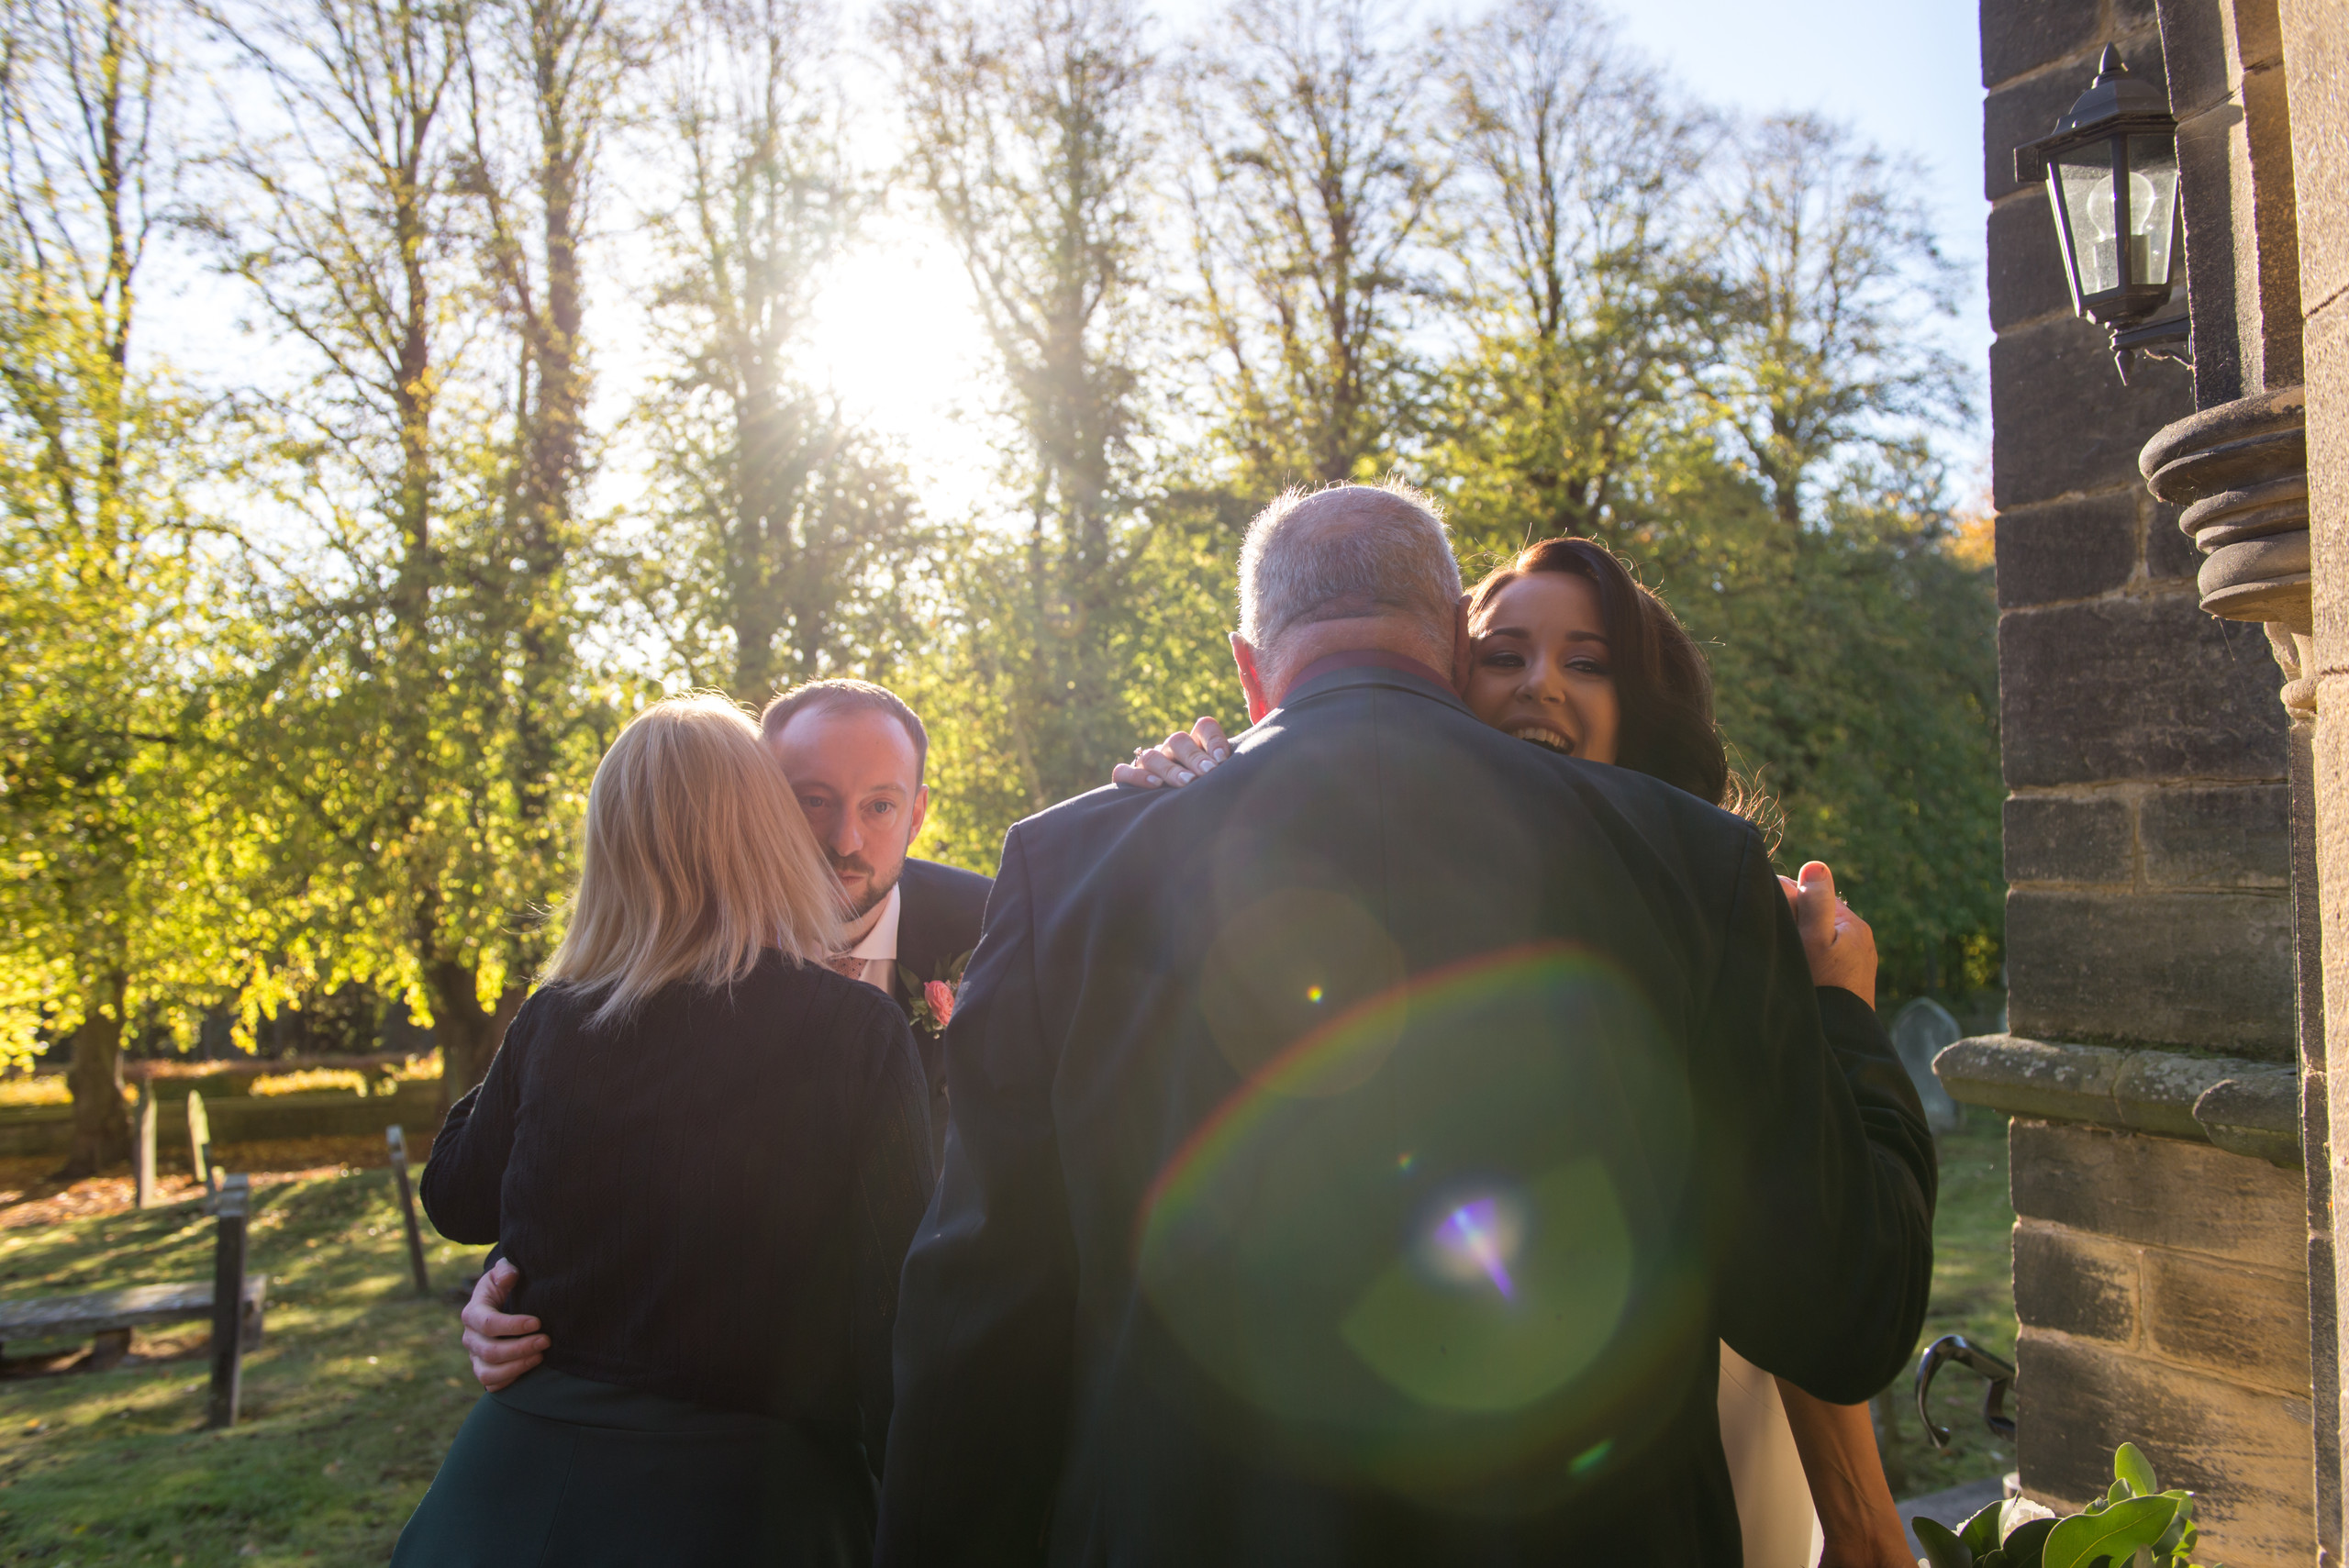 Bride and groom celebrate wedding ceremony with guests outside of church